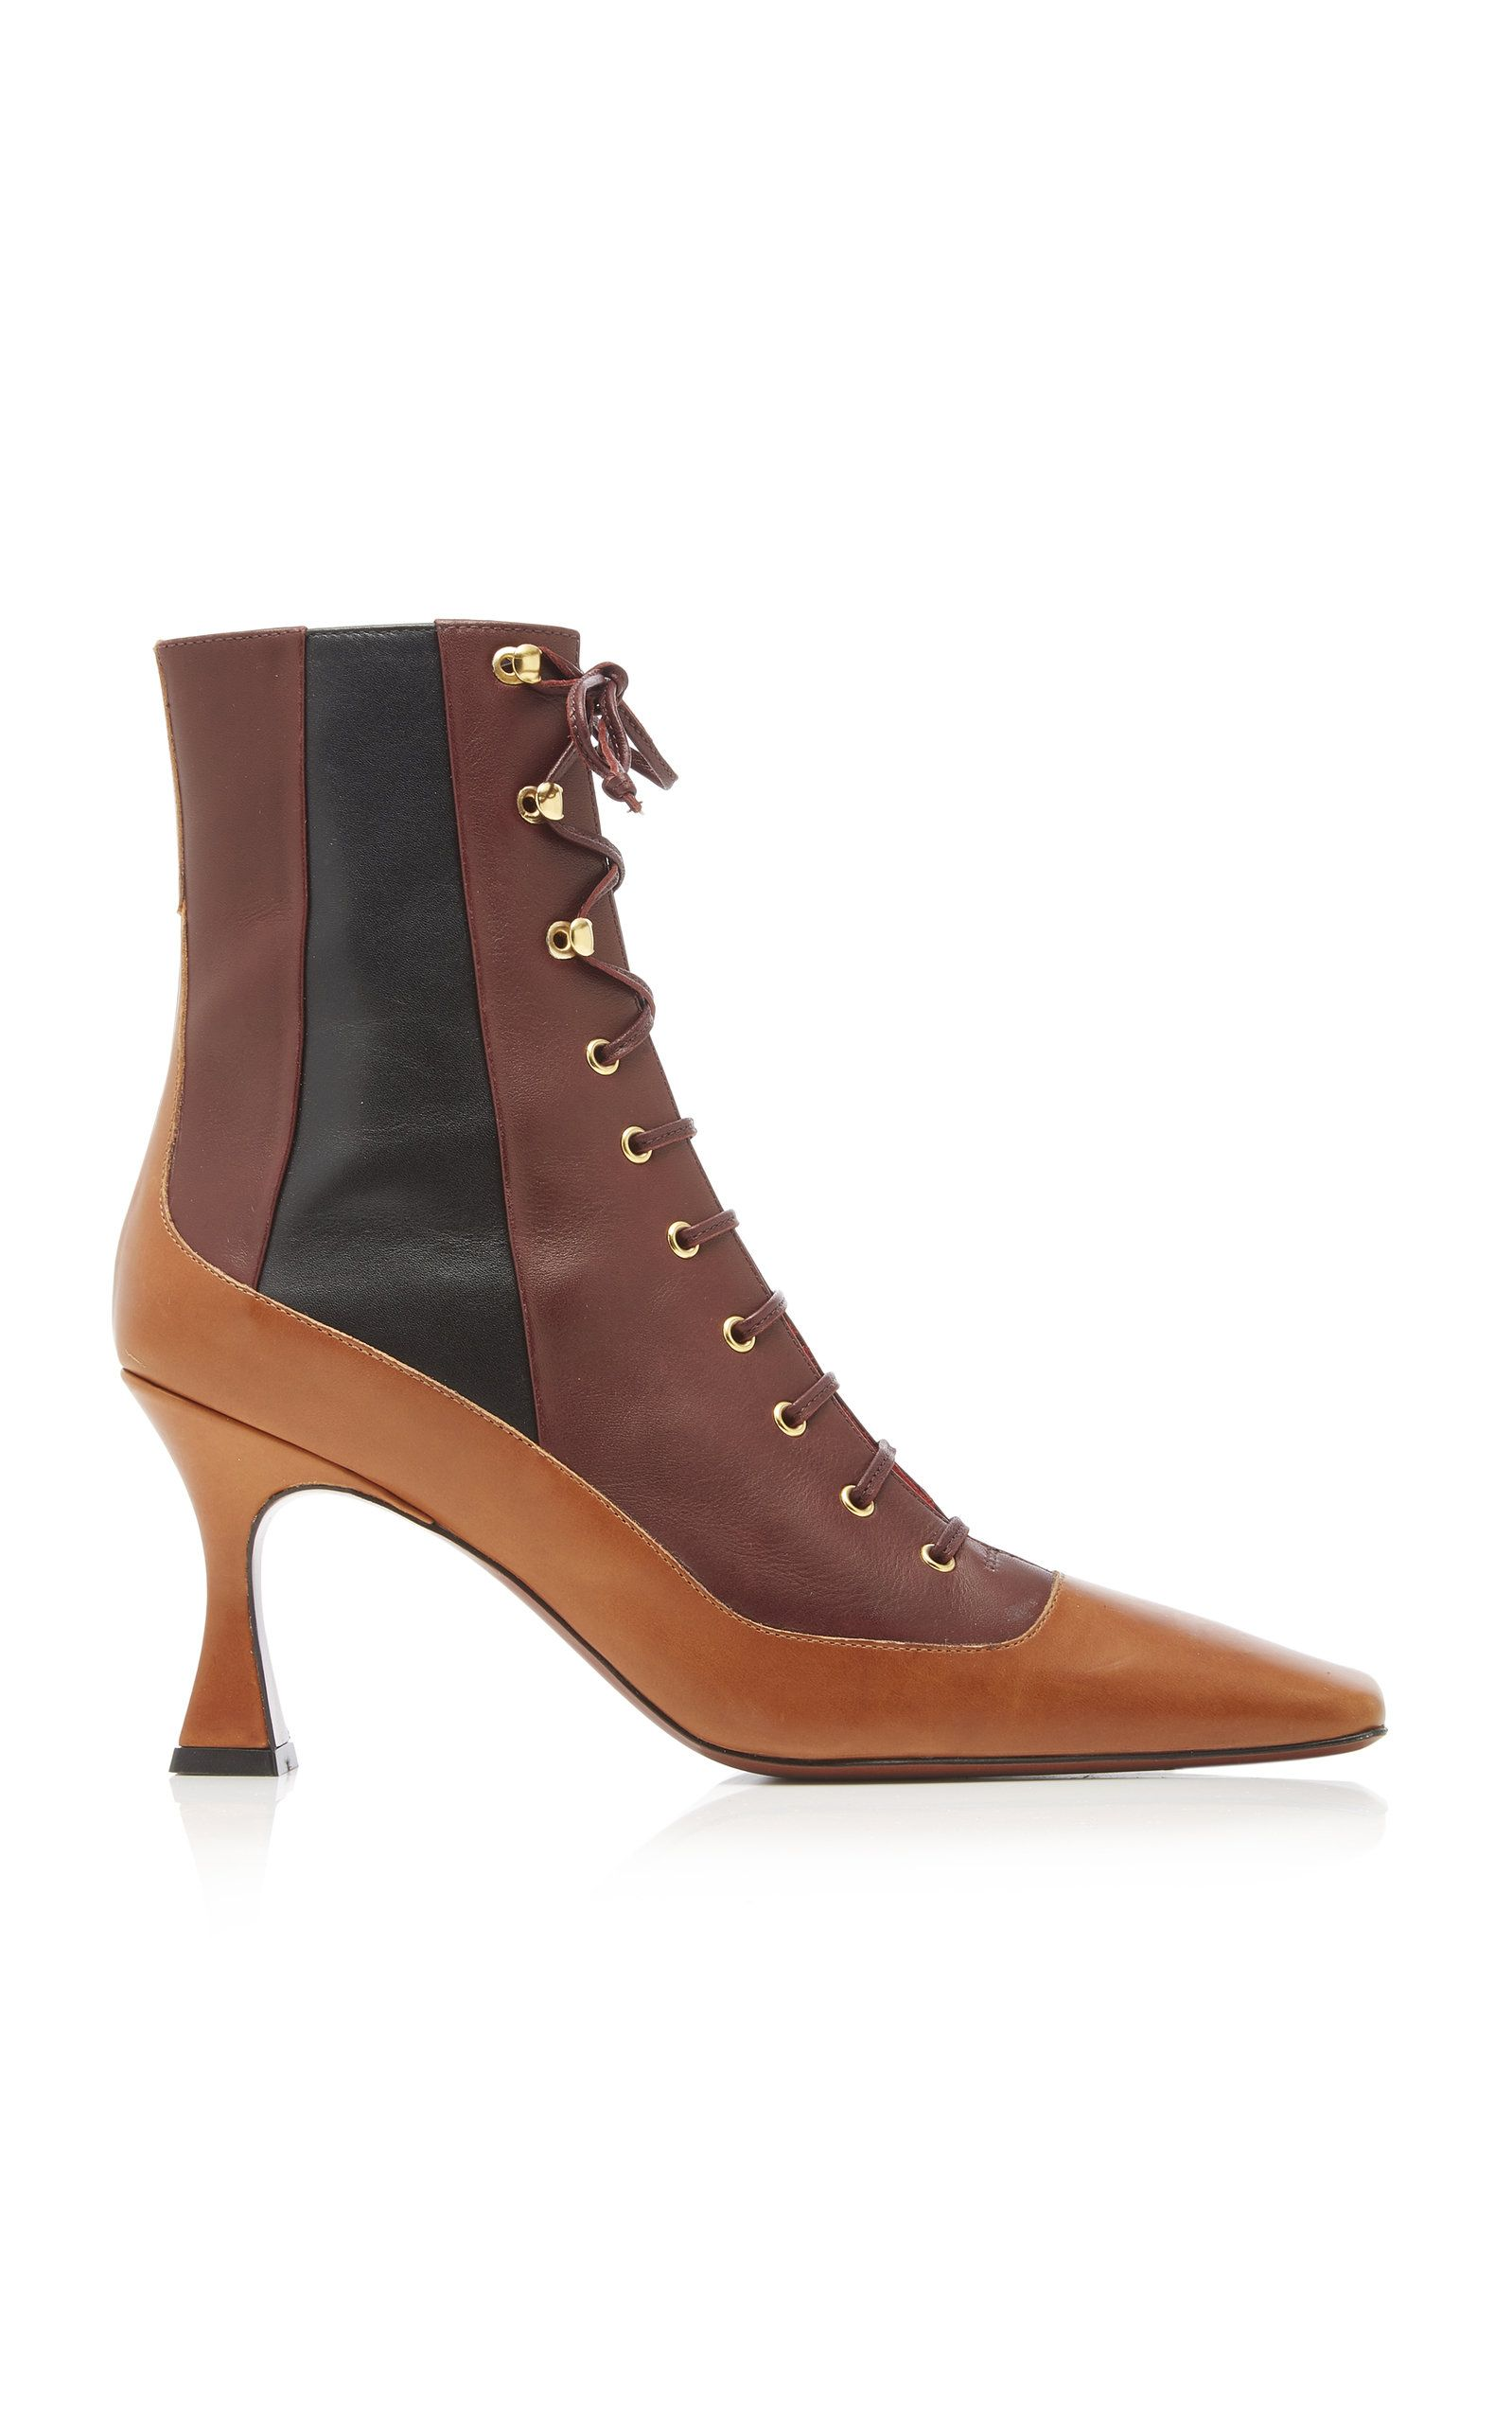 manu-atelier-duck-color-block-leather-ankle-boots